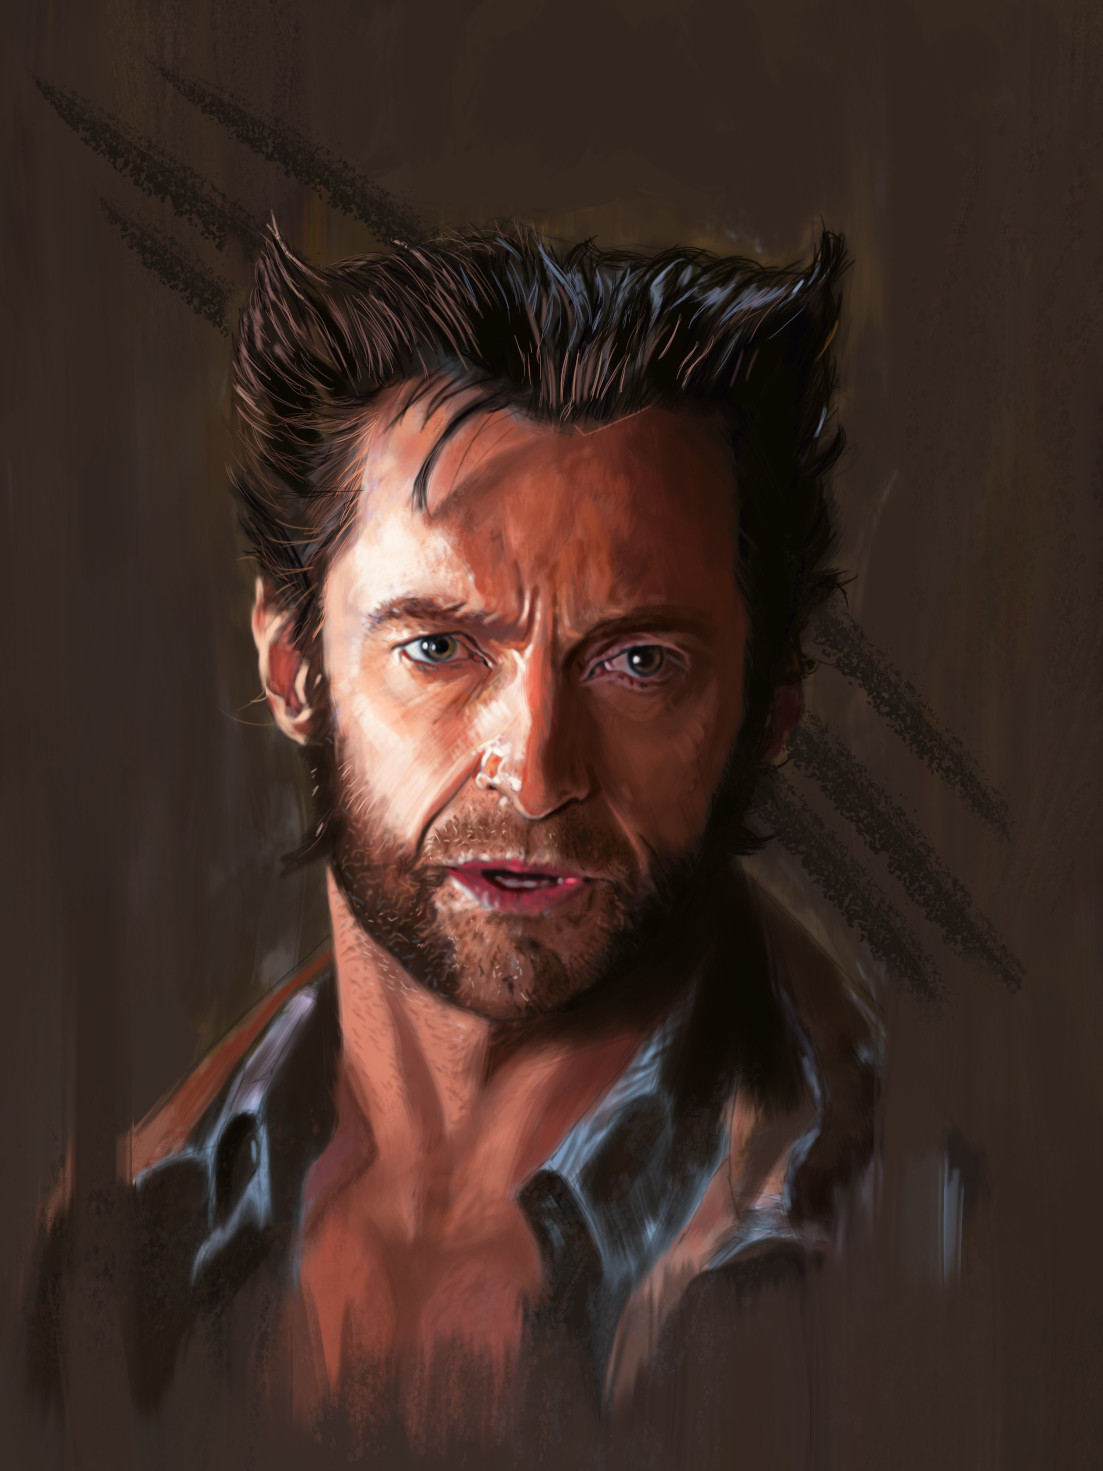 https://cdnb.artstation.com/p/assets/images/images/003/323/103/large/brandon-dennis-wolverine-hair-scraches.jpg?1472428871